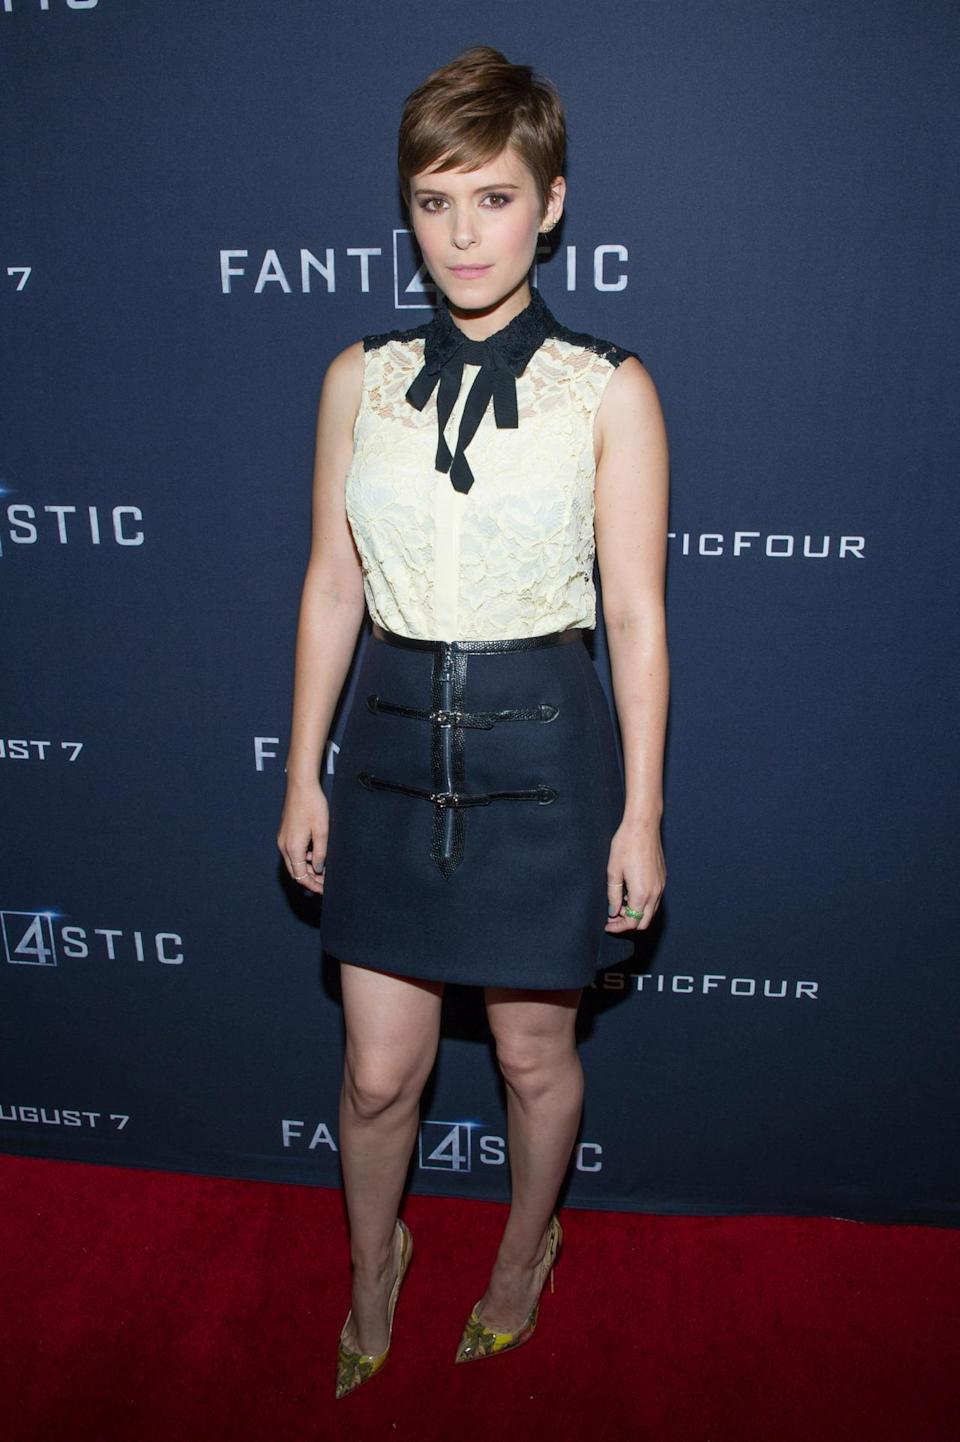 <p>The fashionable actress attended the Atlanta screening of her newest film,<i> Fantastic Four</i>, in an outfit that complemented her new pixie cut.<br><br></p>